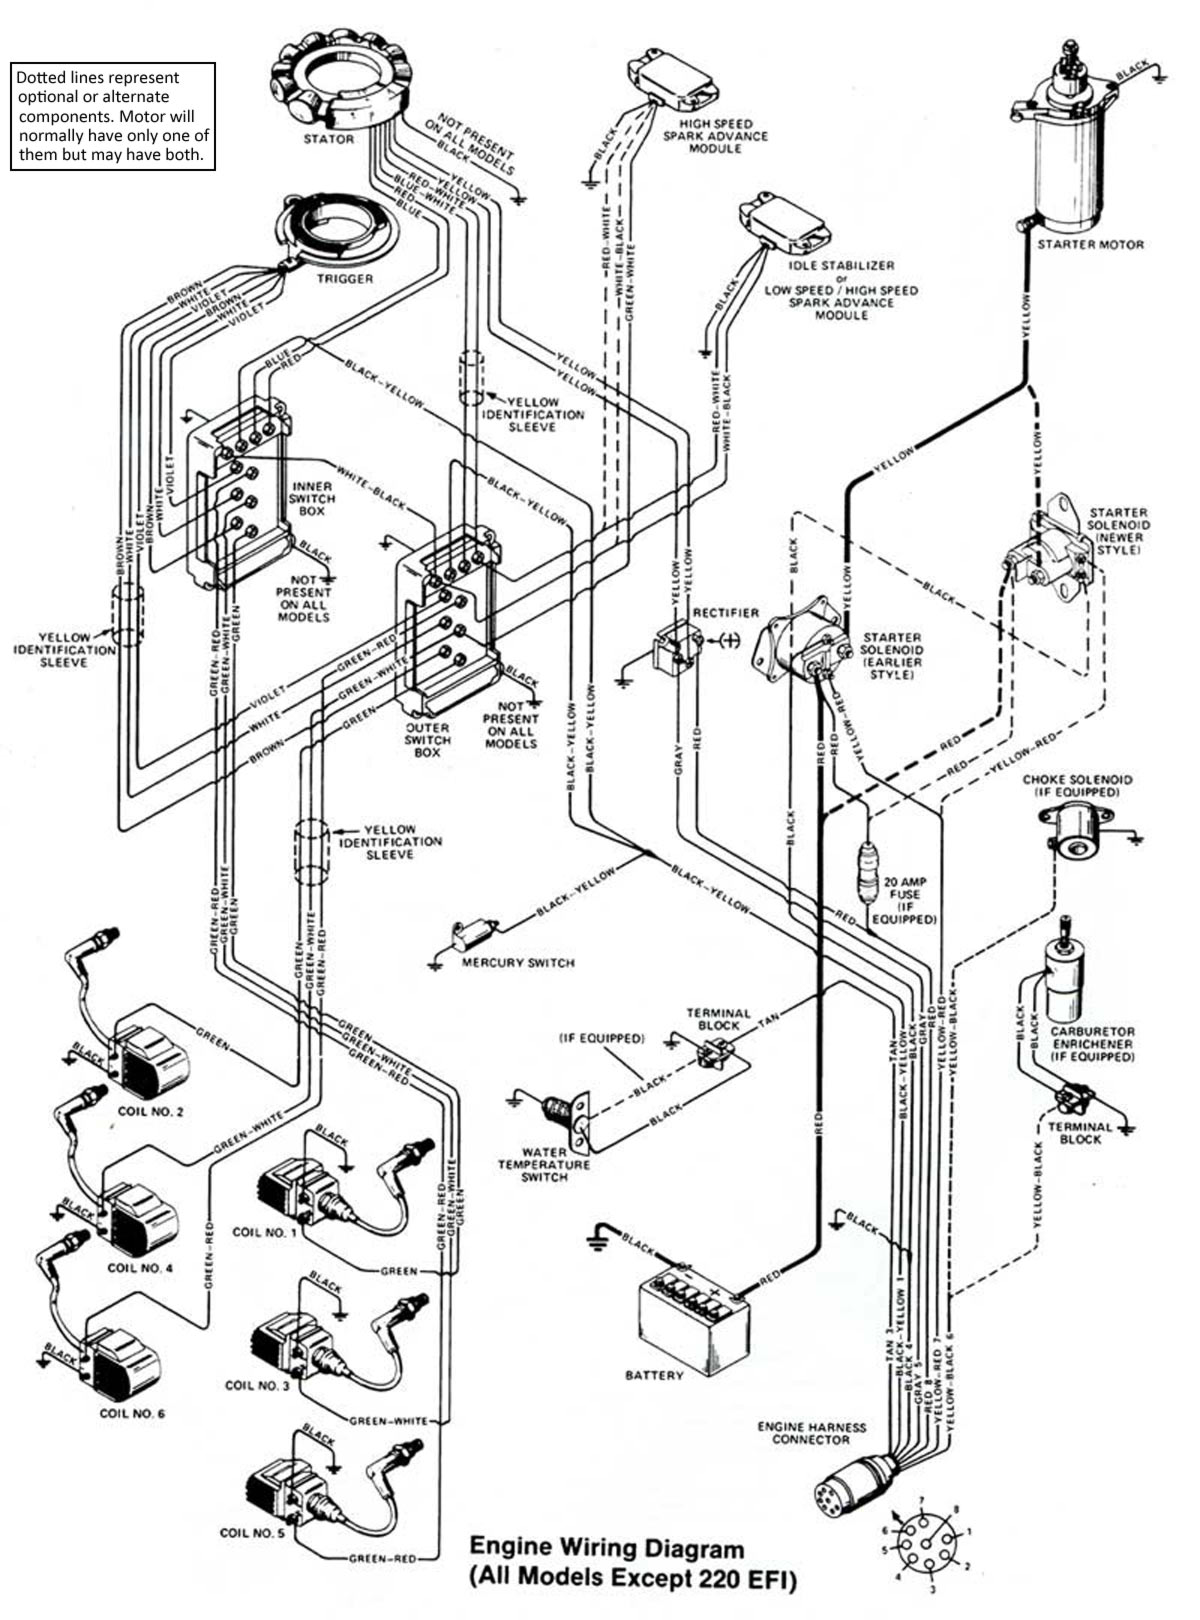 Mercury Outboard Wiring diagrams -- Mastertech Marin on 2000 mercury 50 hp wiring diagram, 2006 mercury 50 hp oil filter, 1999 mercury 50 hp wiring diagram,